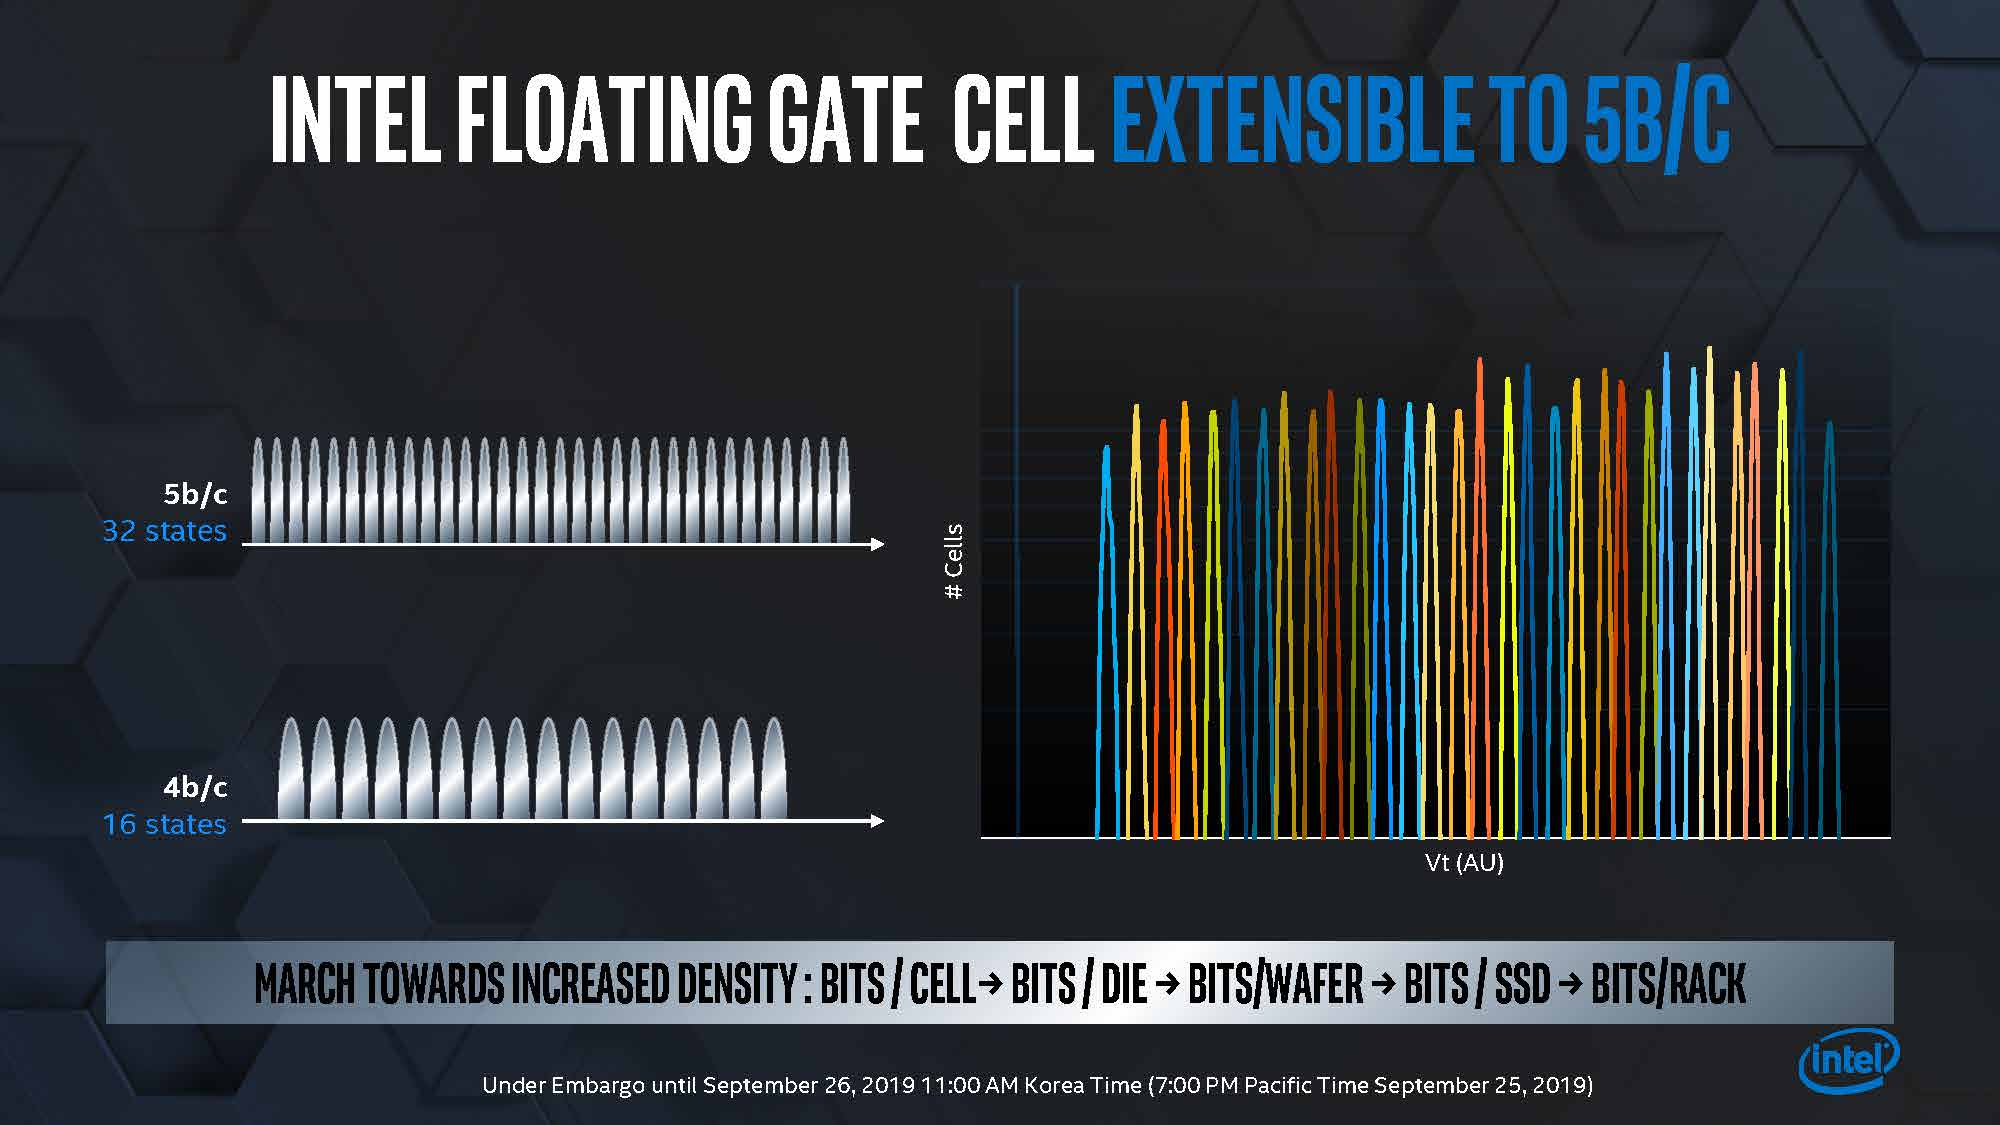 Intel Memory Storage Day 2019 Flating Gate Cell Powering To 5bpc